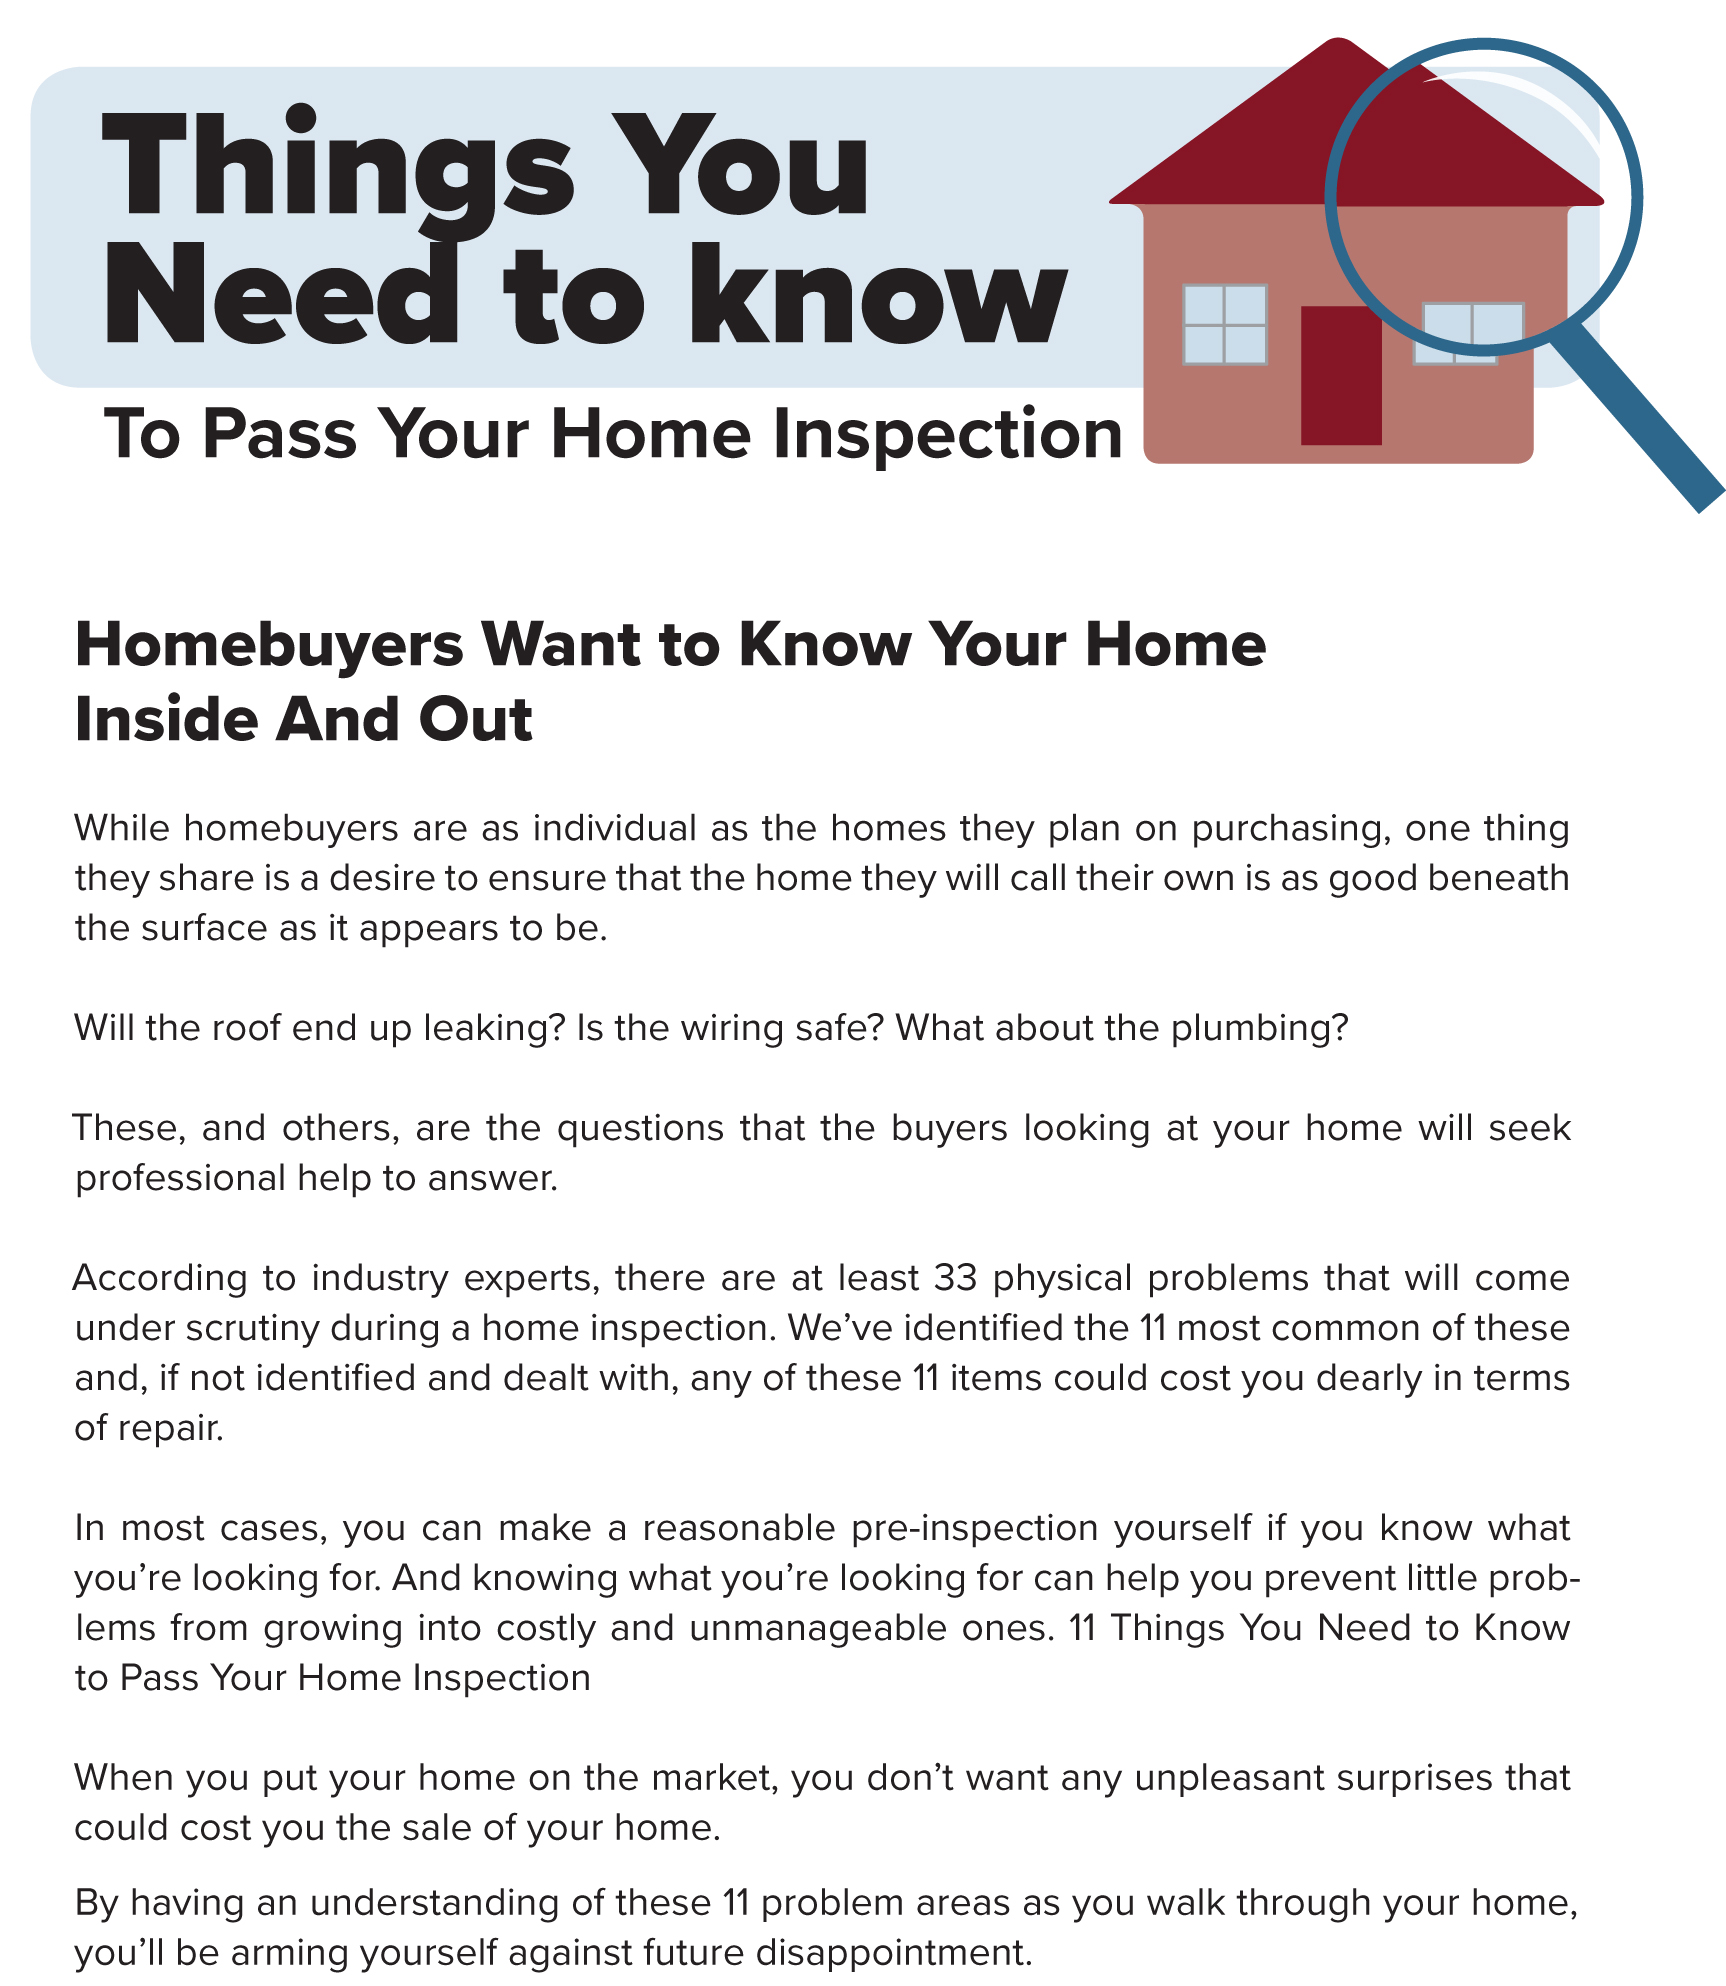 Inspection - things you need to know-1.jpg